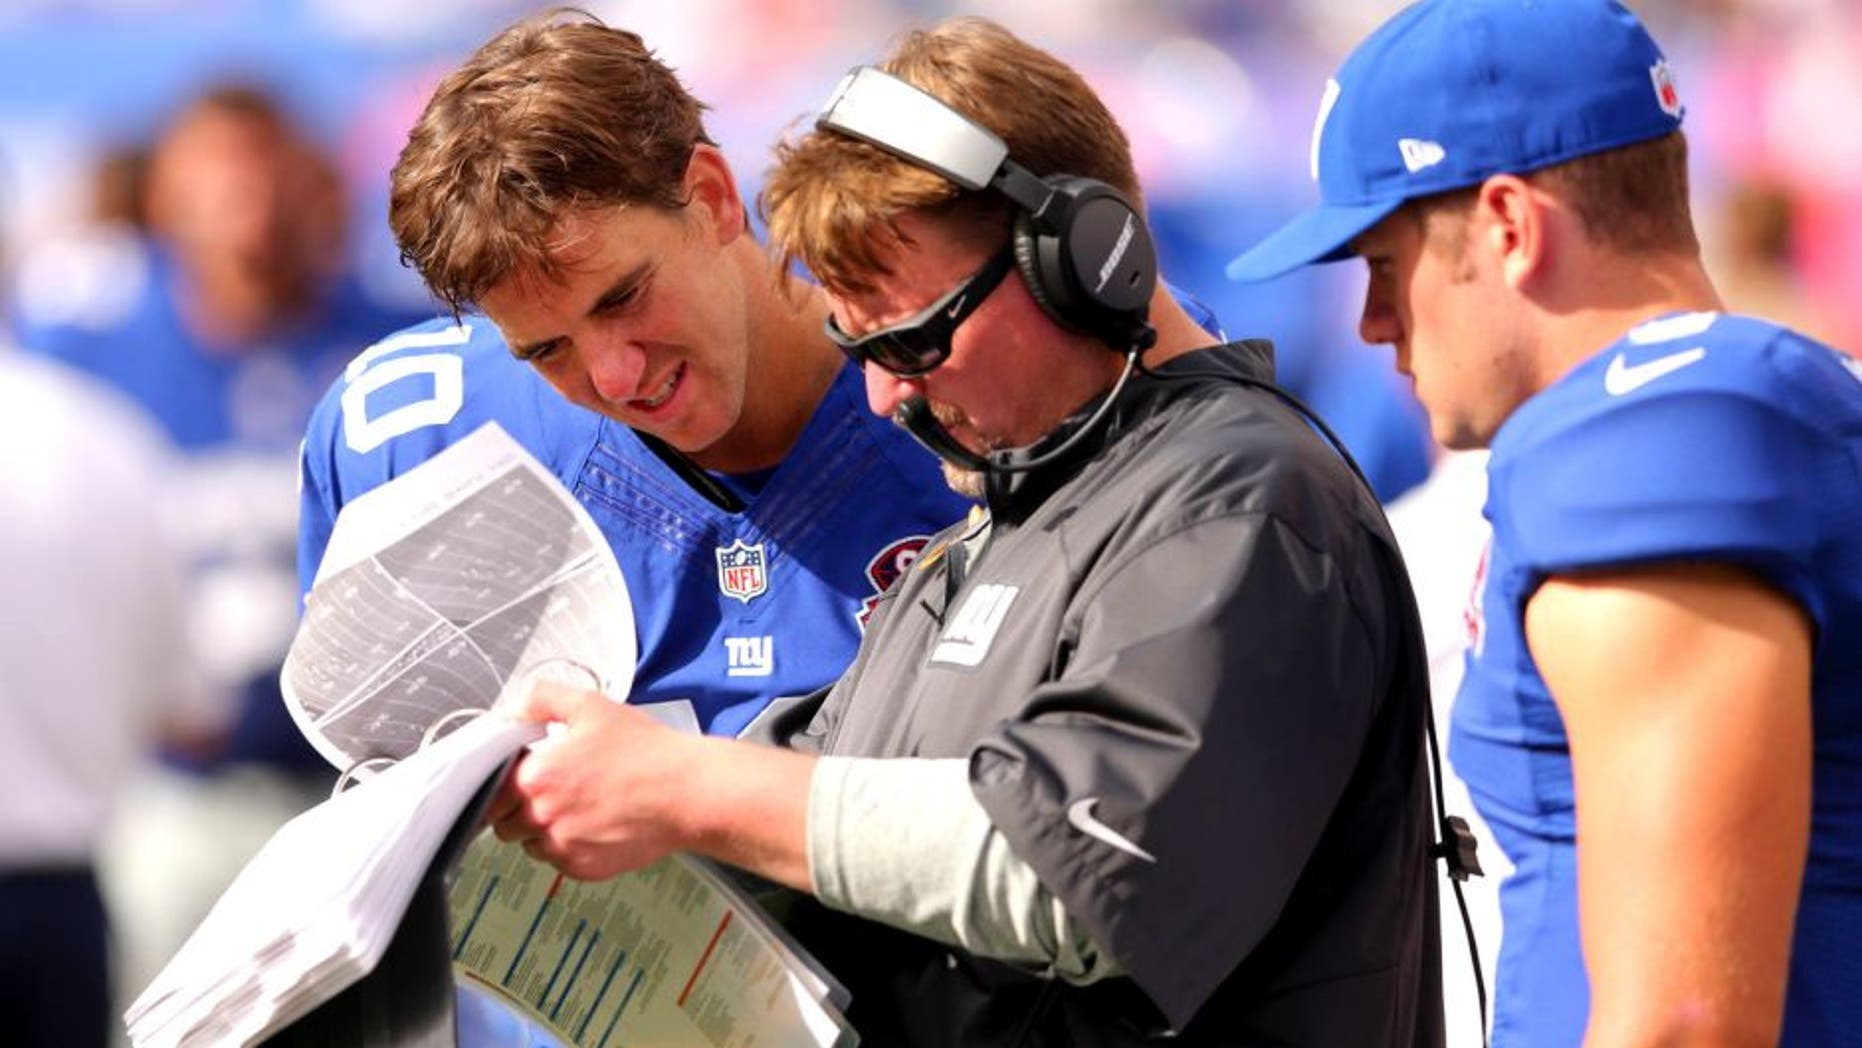 Sep 14, 2014; East Rutherford, NJ, USA; New York Giants quarterback Eli Manning (10) and offensive coordinator Ben McAdoo and New York Giants quarterback Ryan Nassib (9) looks at the playbook during the fourth quarter against the Arizona Cardinals at MetLife Stadium. The Cardinals defeated the Giants 25-14. Mandatory Credit: Brad Penner-USA TODAY Sports